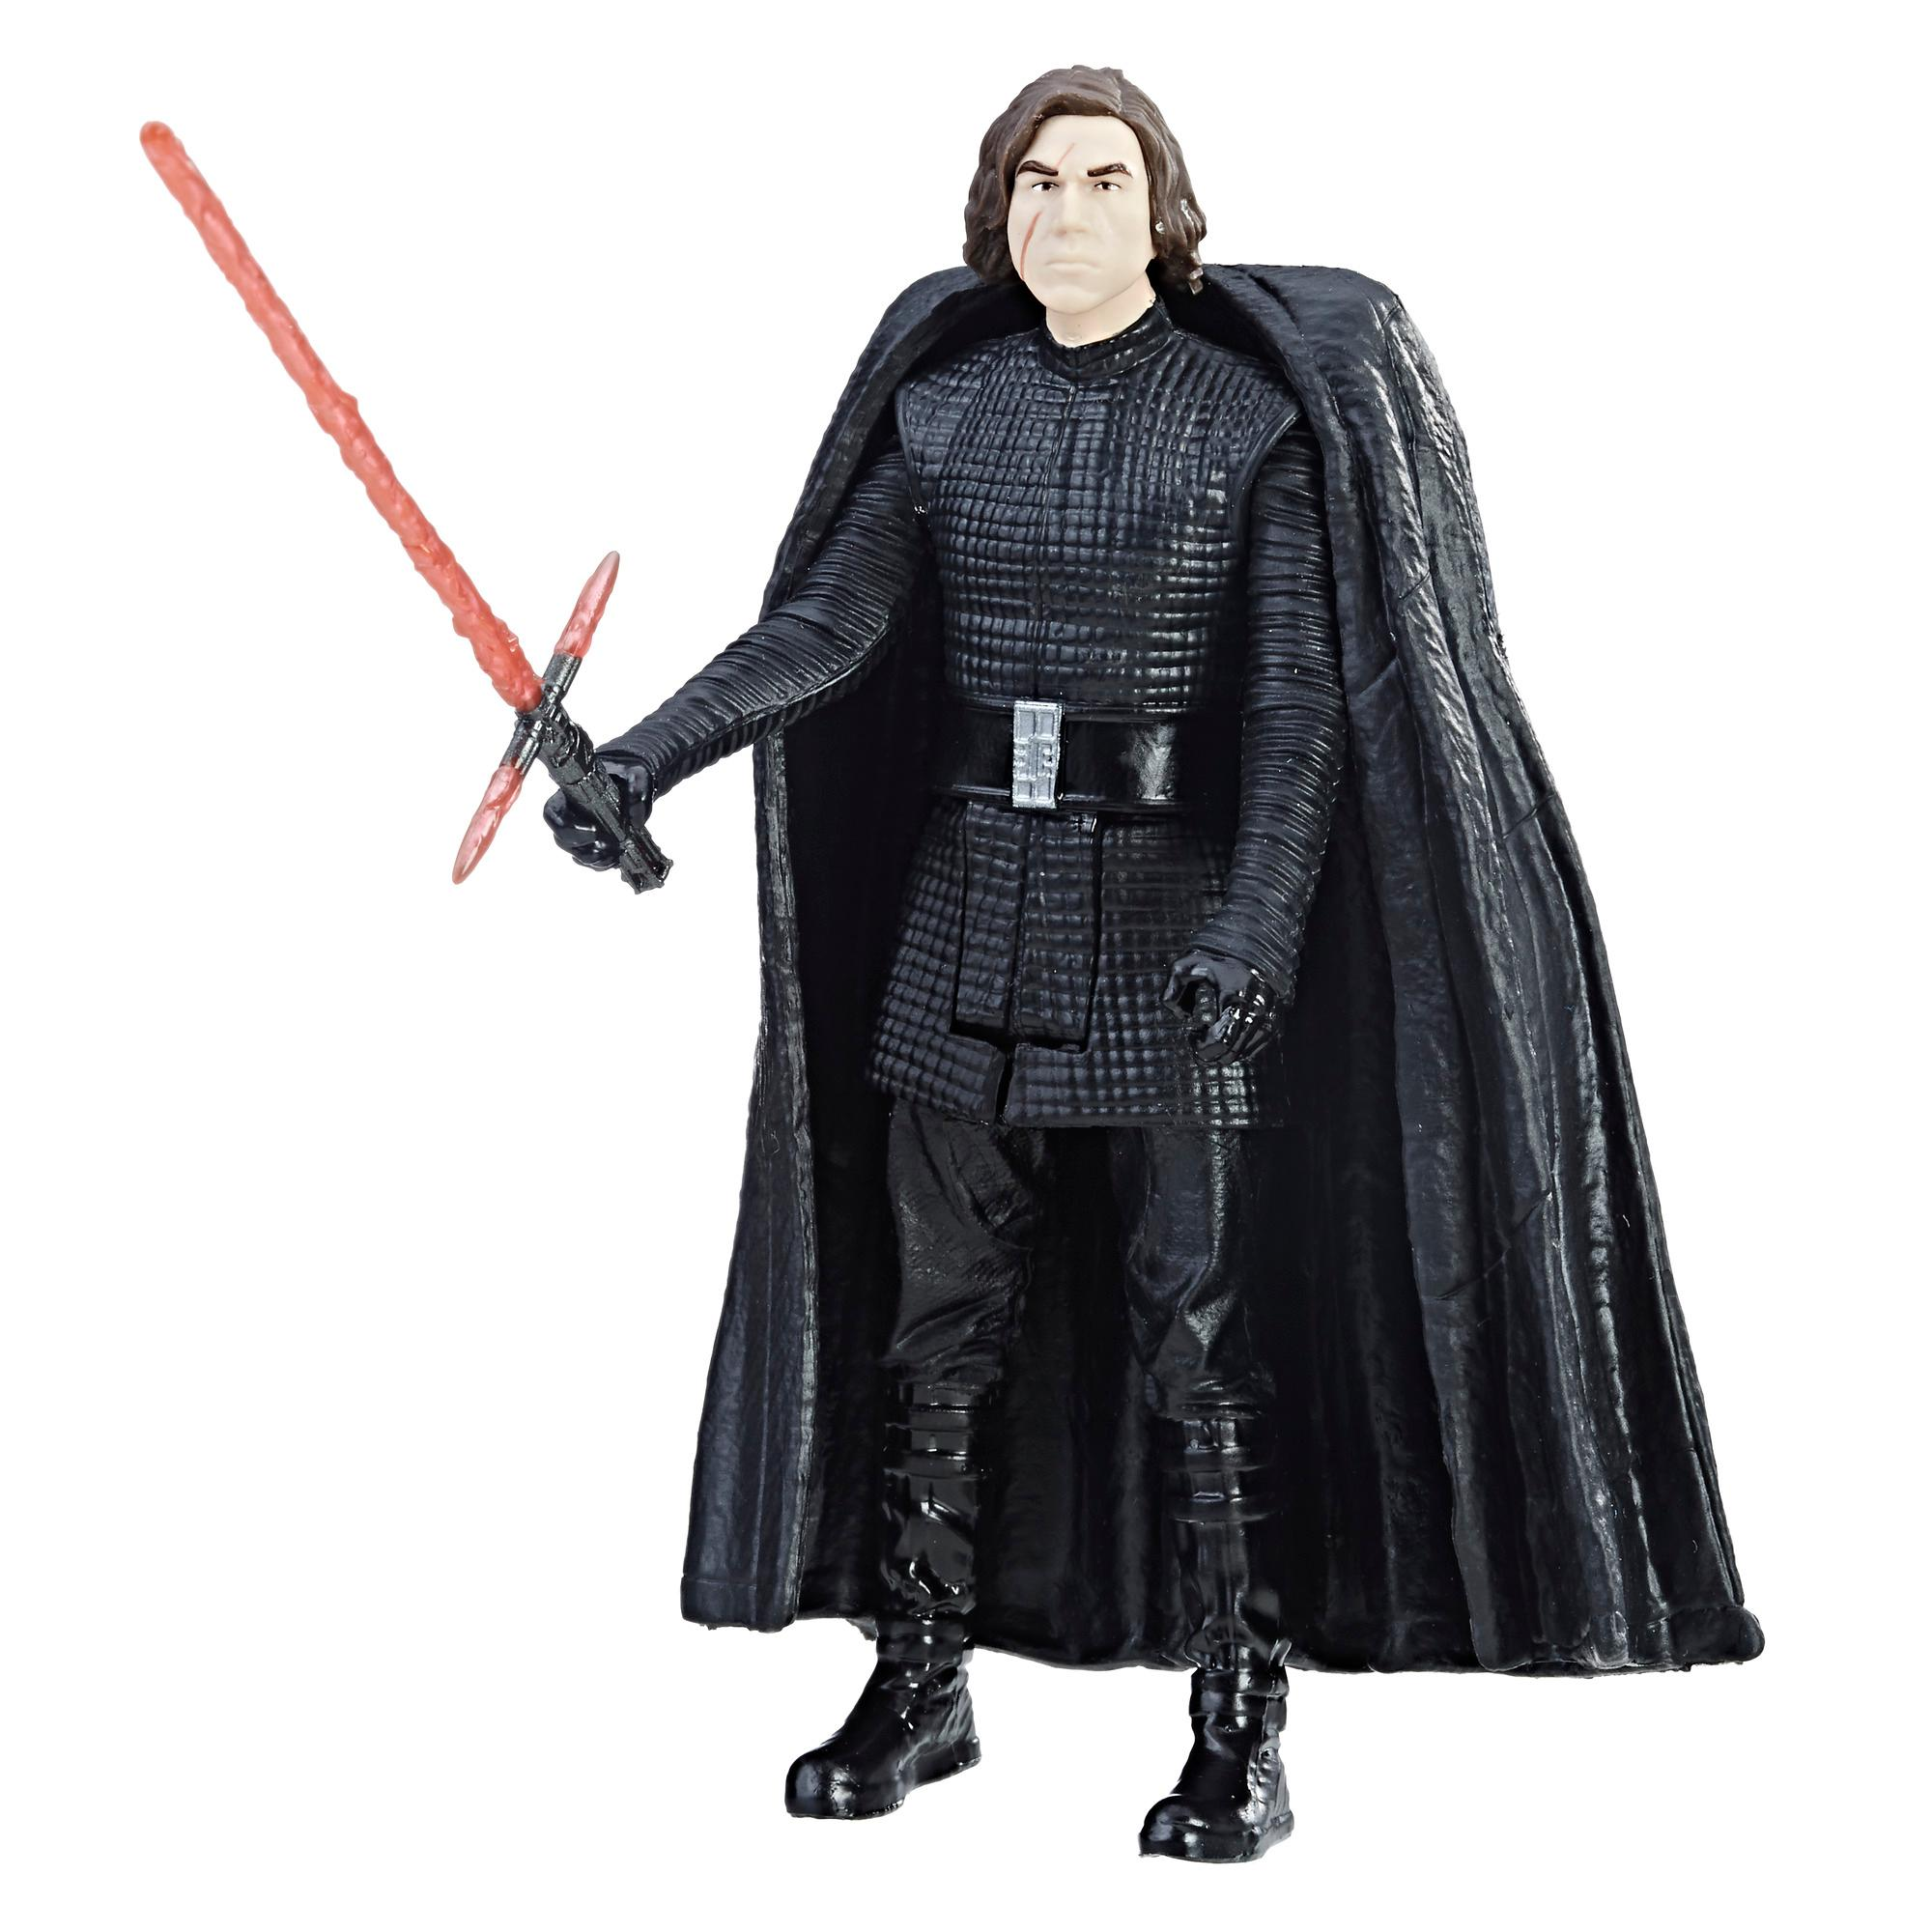 Star Wars Episode 8 3.75 FORCE LINK Figuren Kylo Ren